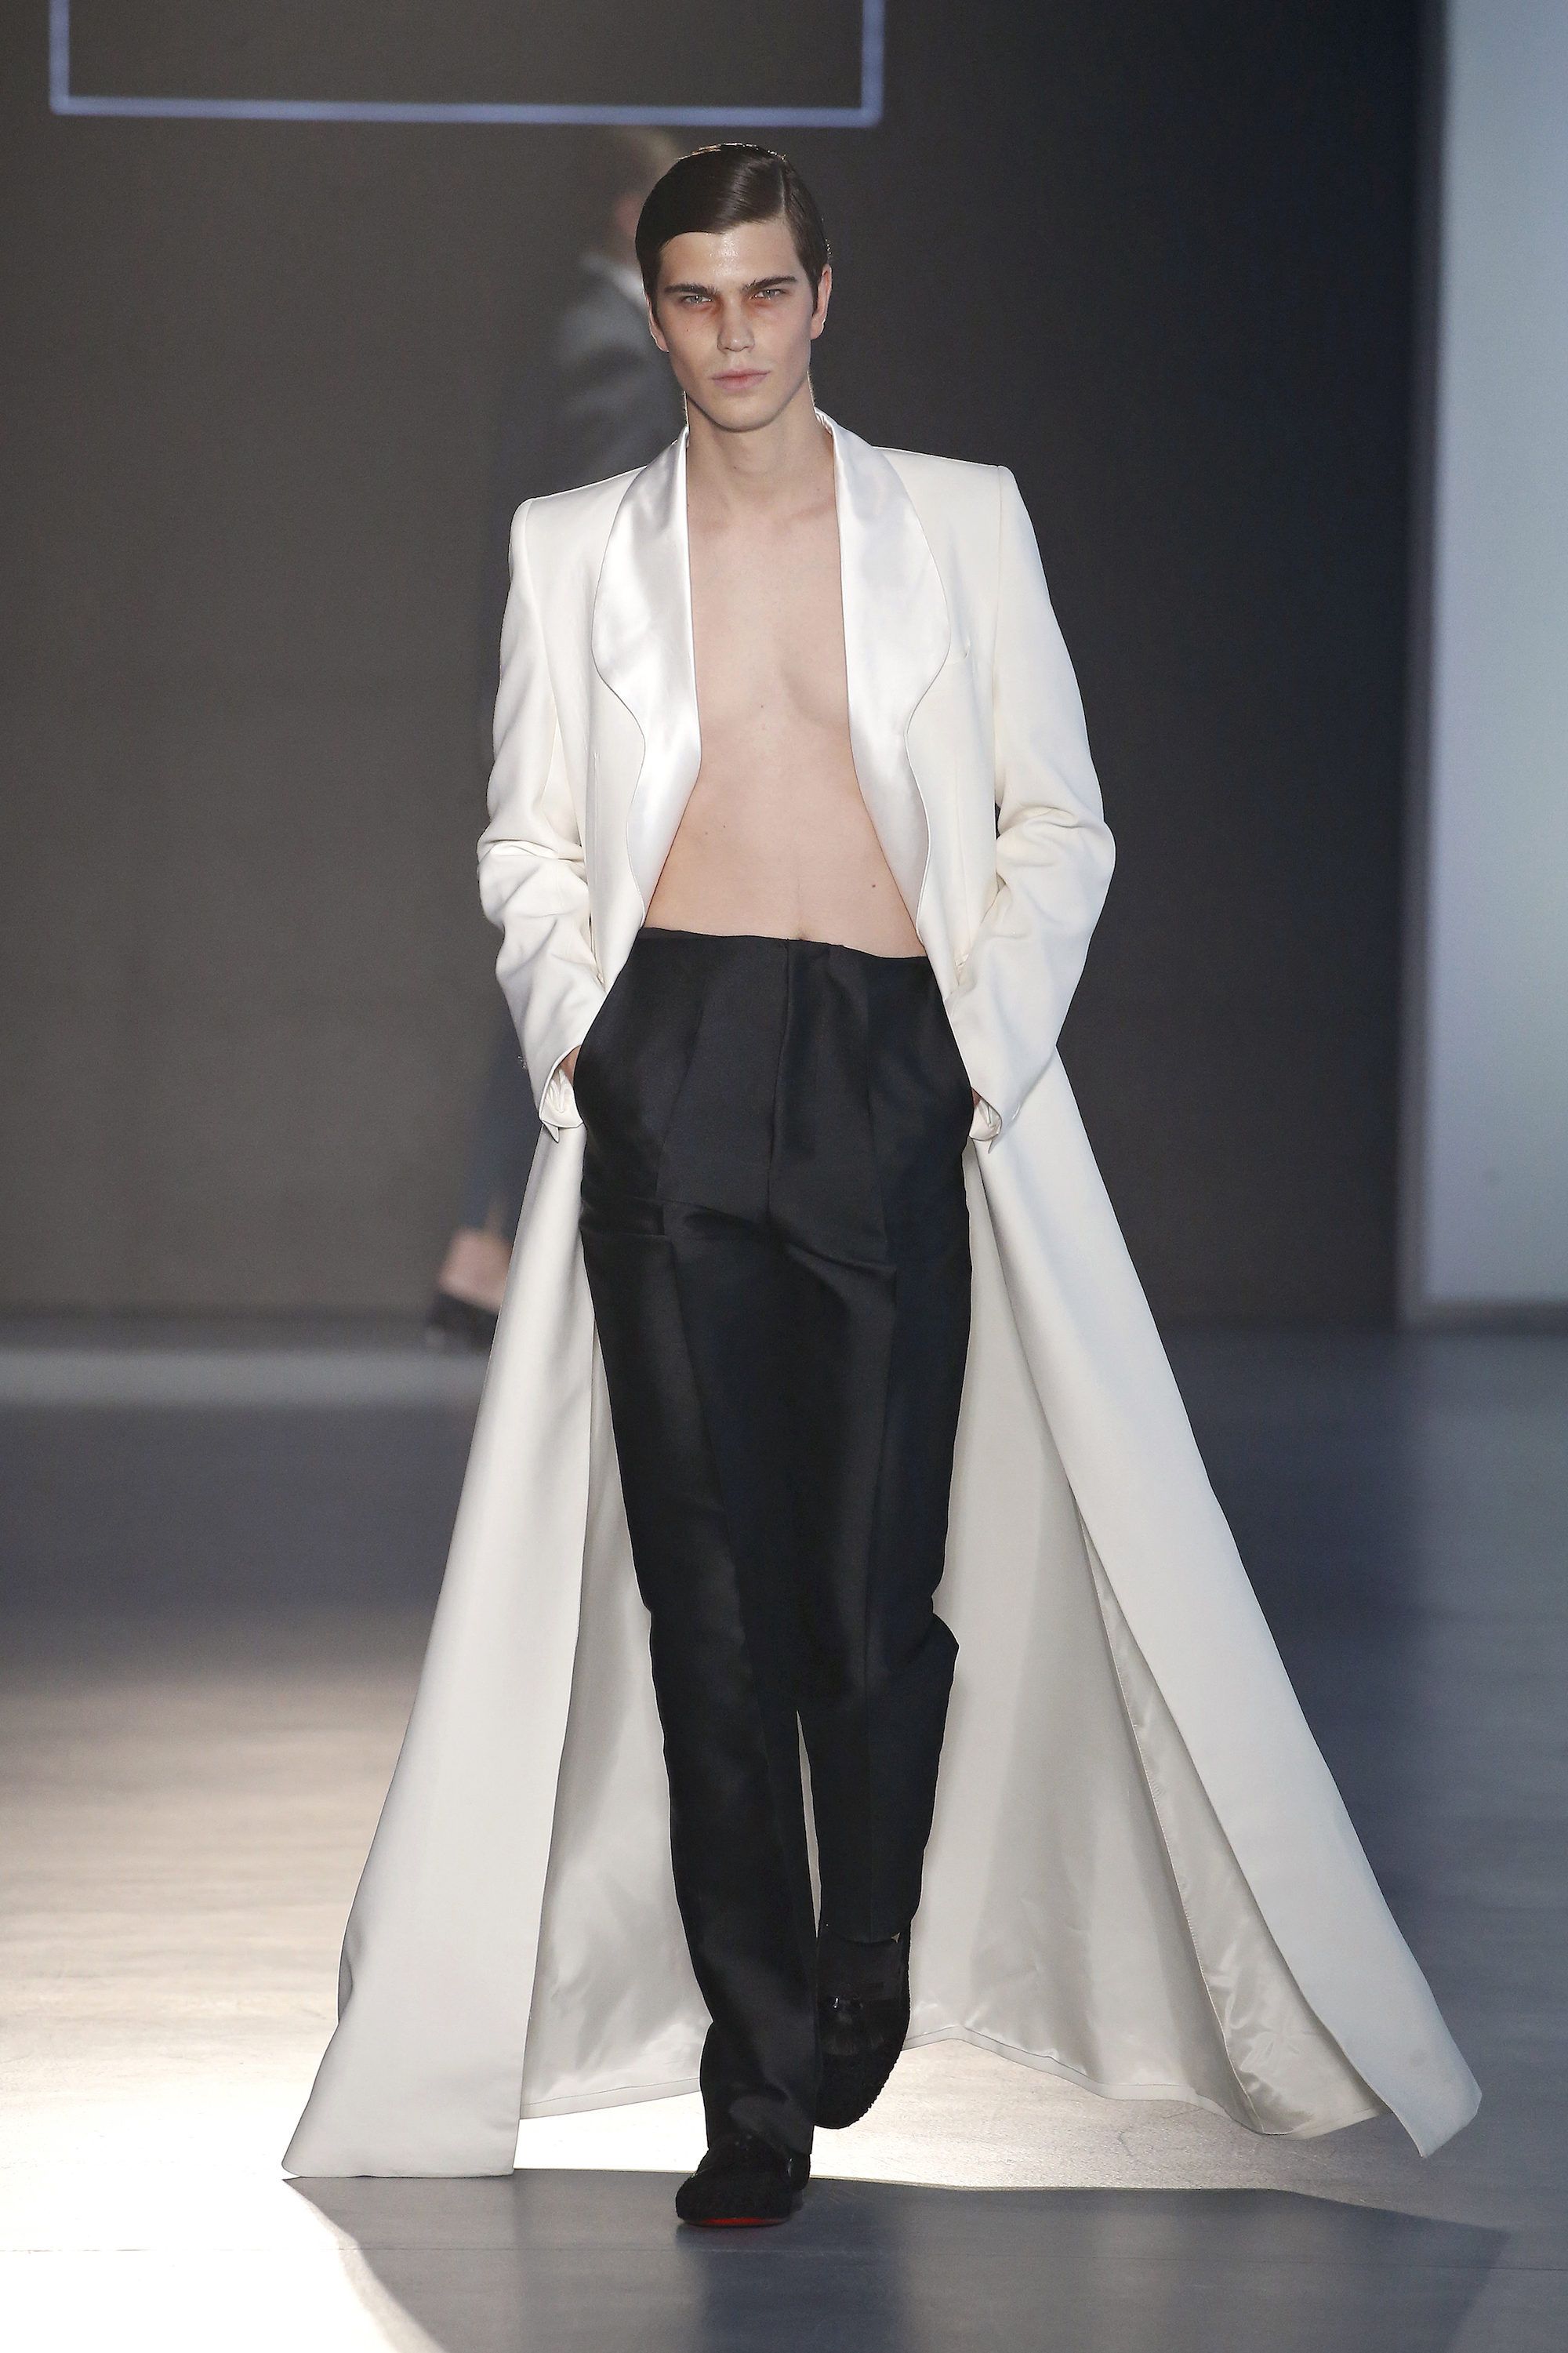 Mans Concept & Menswear at Barcelona Fashion Week white tuxedo